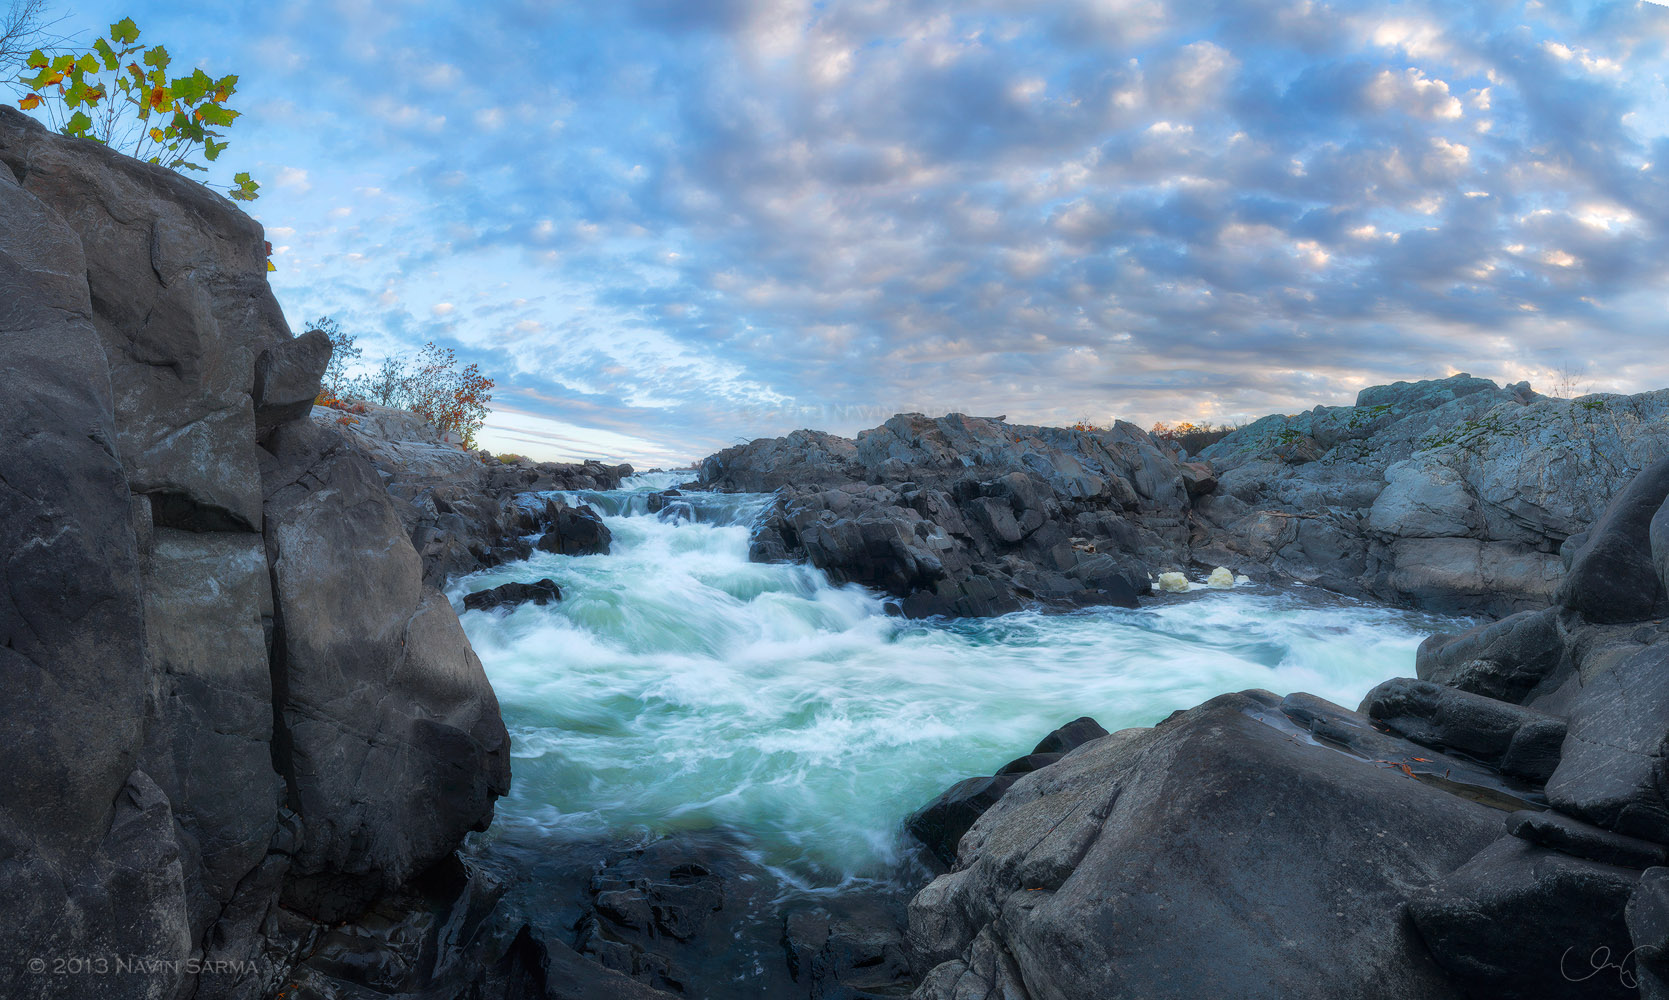 panorama showcases the huge rocks beneath a dramatic, autumn sunrise at Great Falls National Park, Virginia.